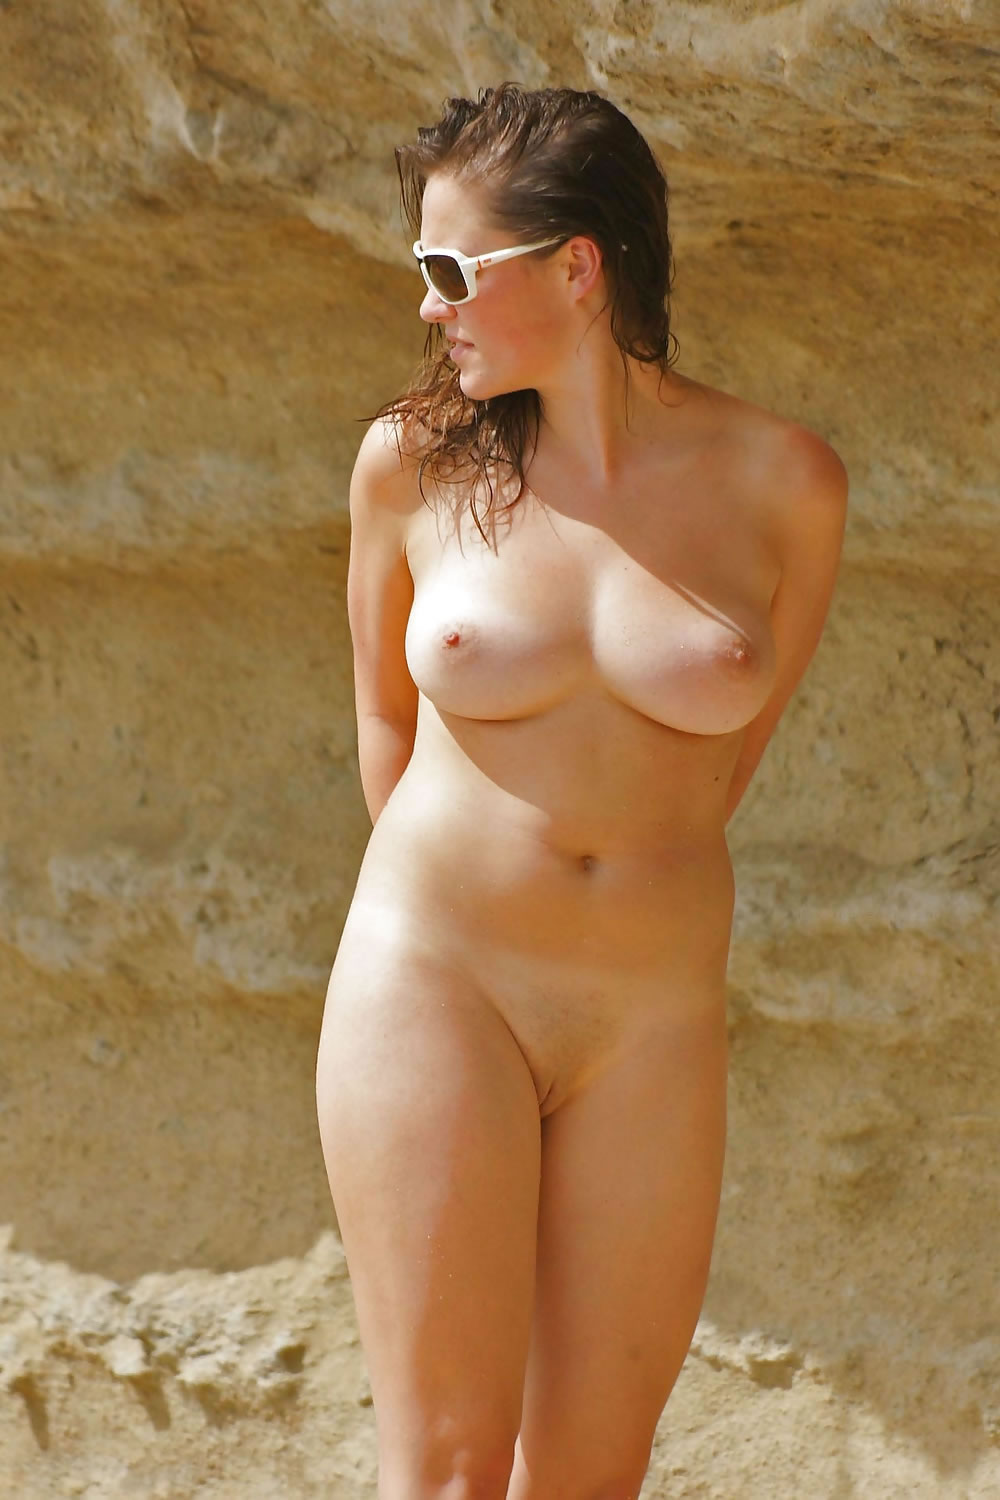 Beach voyeur photos nude